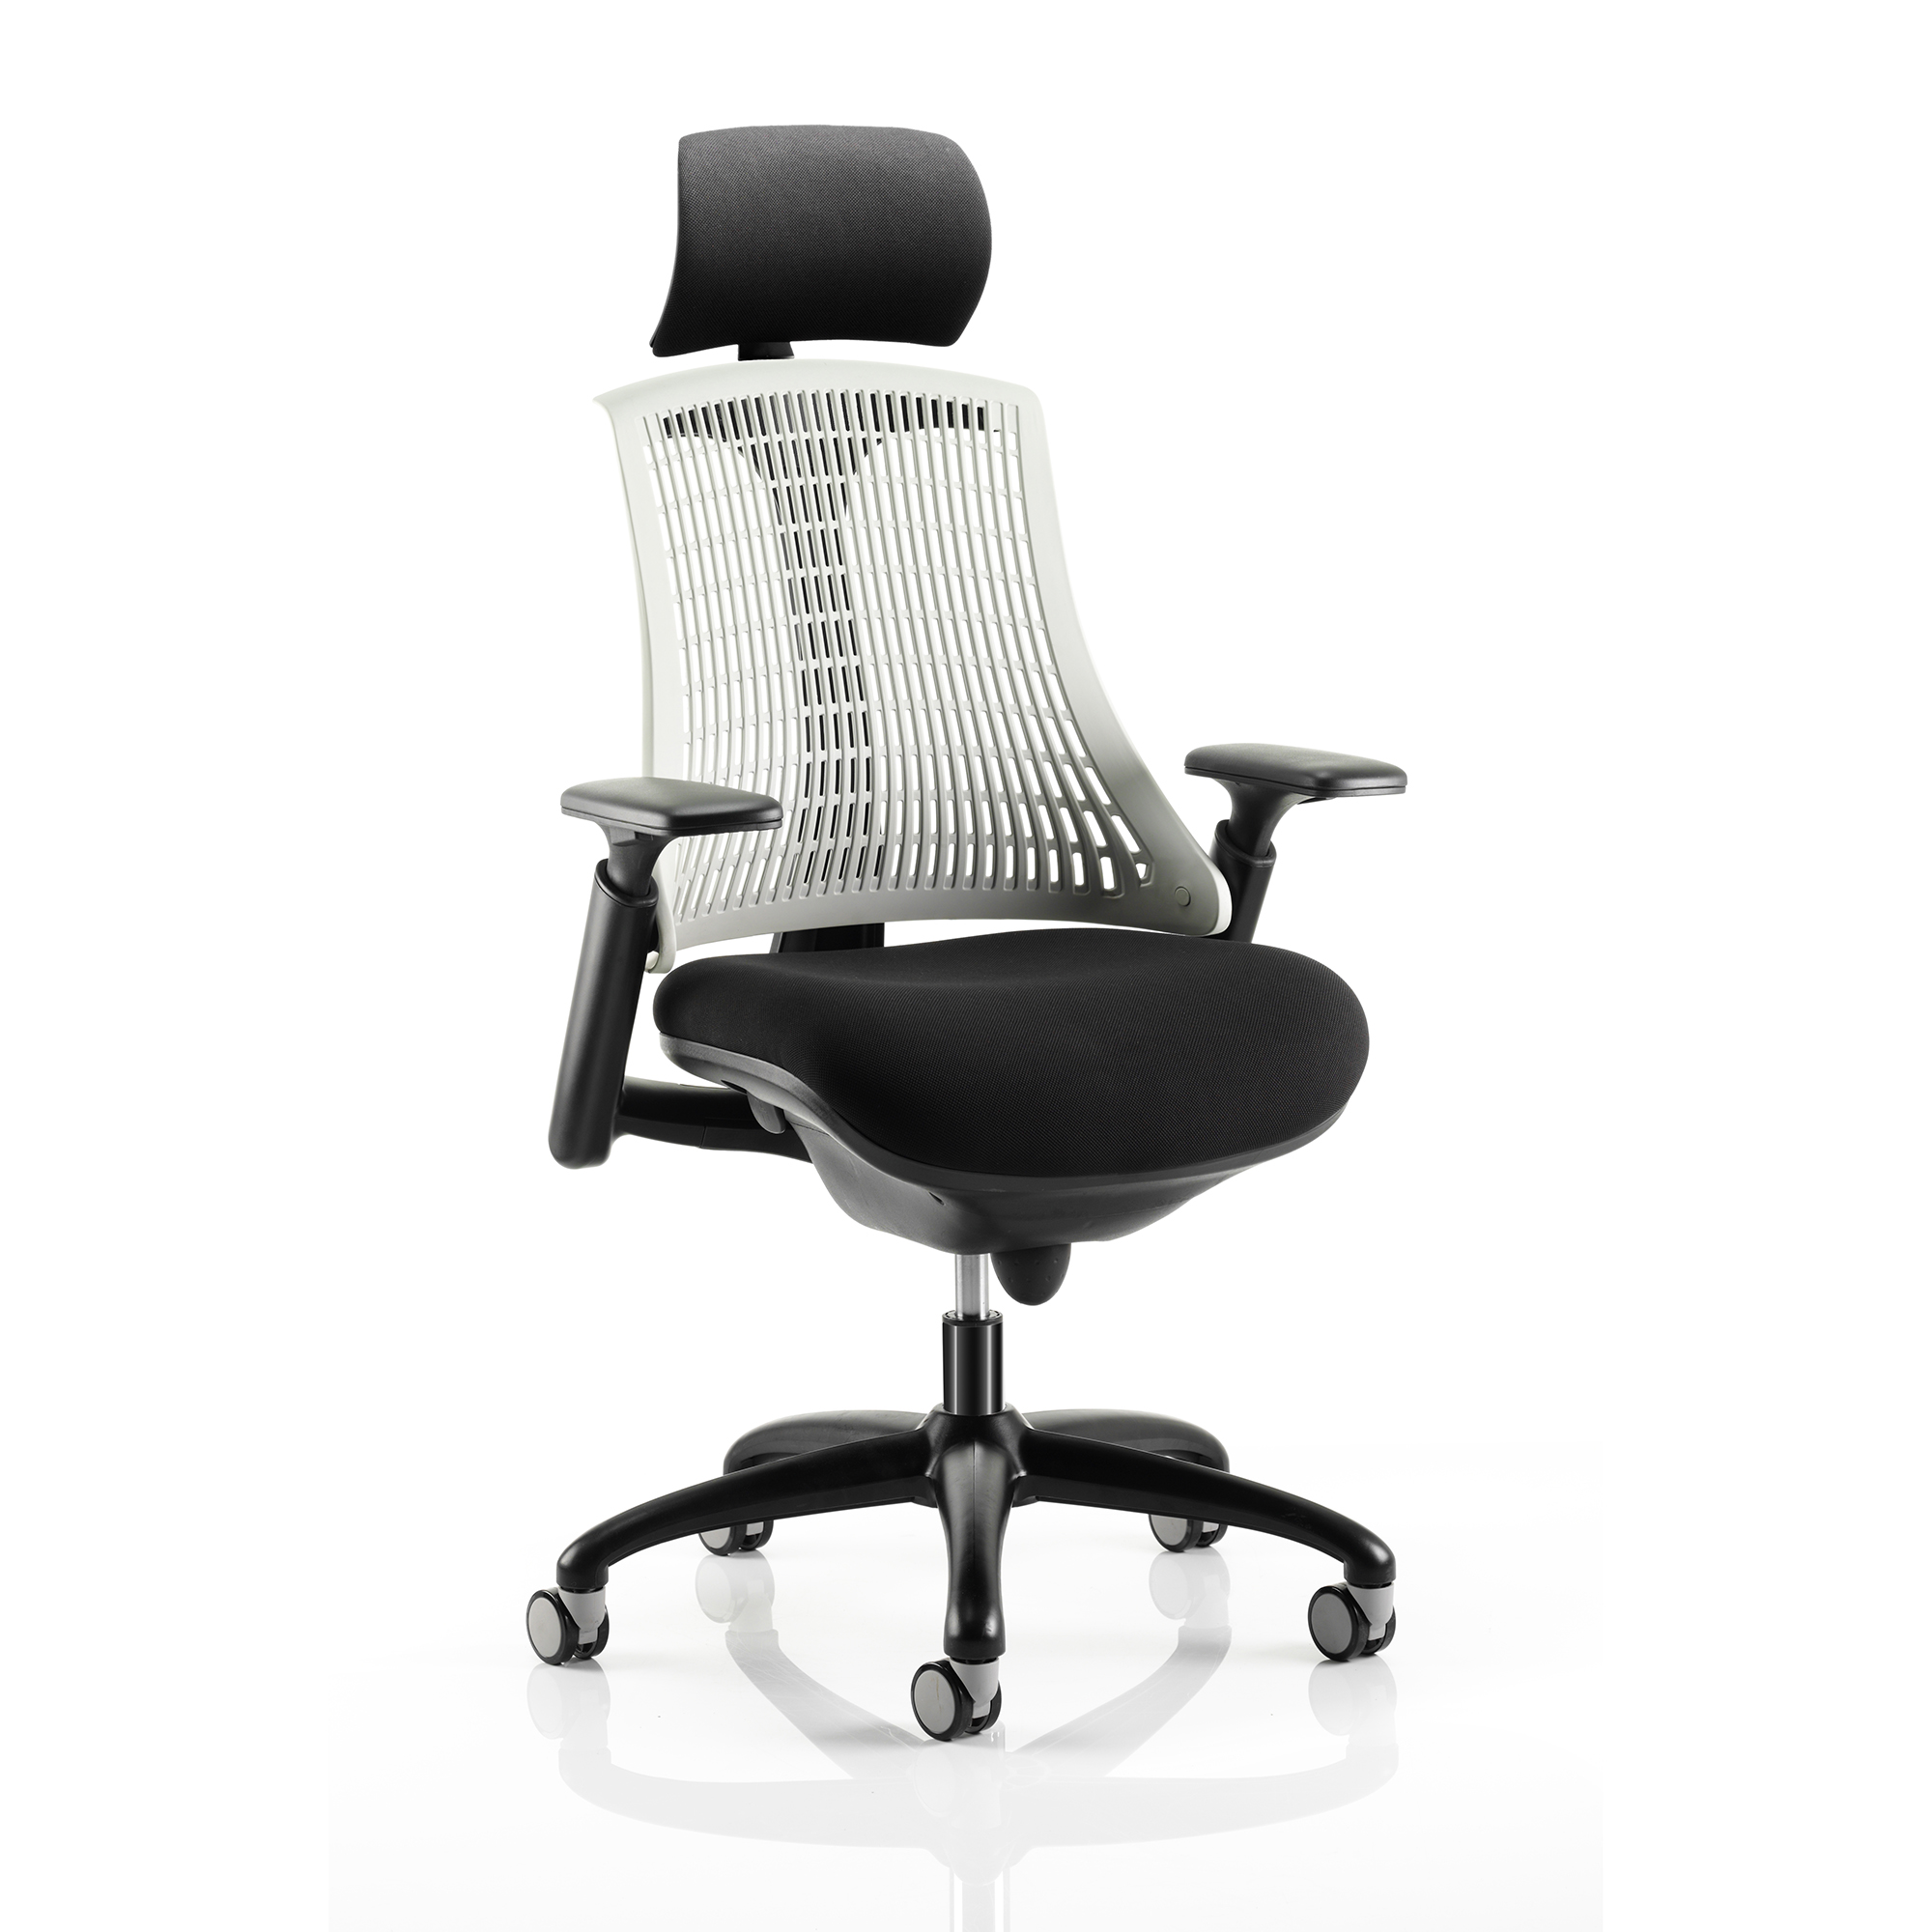 Guest seating Trexus Flex Task Operator Chair With Arms And Headrest Blk Fabric Seat MstoneWhtBack Blk Frame Ref KC0104